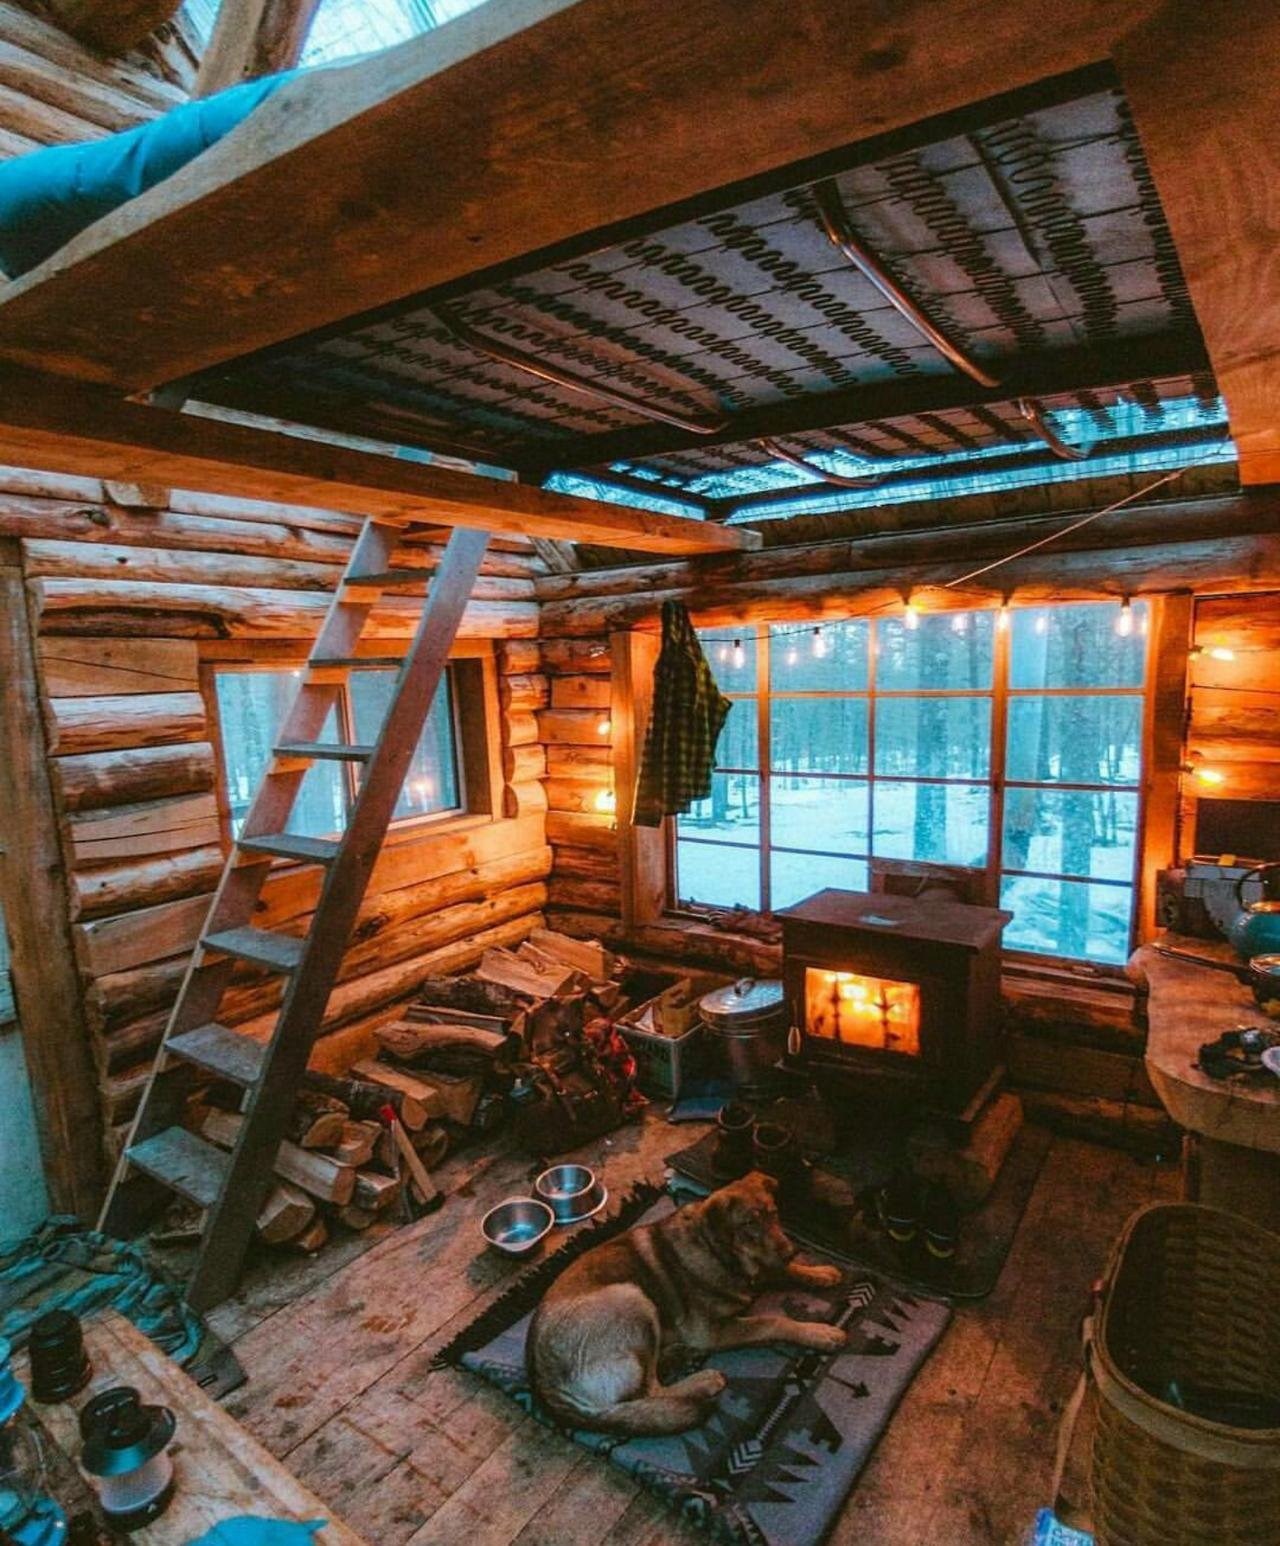 Cozy cabin in the winter, with dog and fireplace